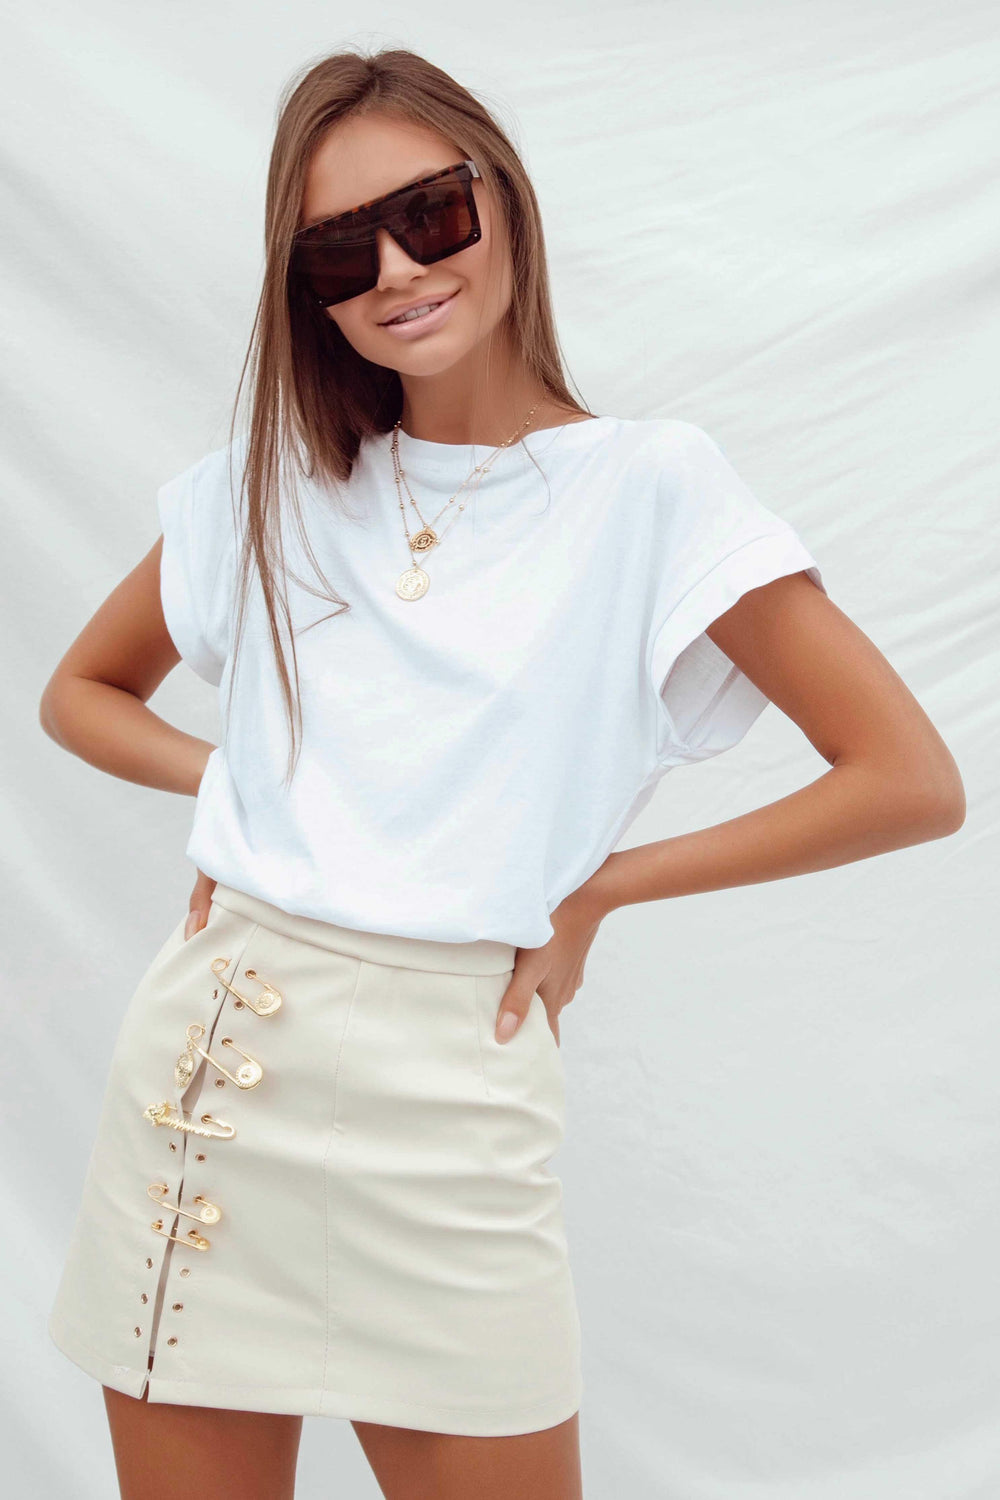 KARLA SKIRT IN BEIGE - Chic Le Frique